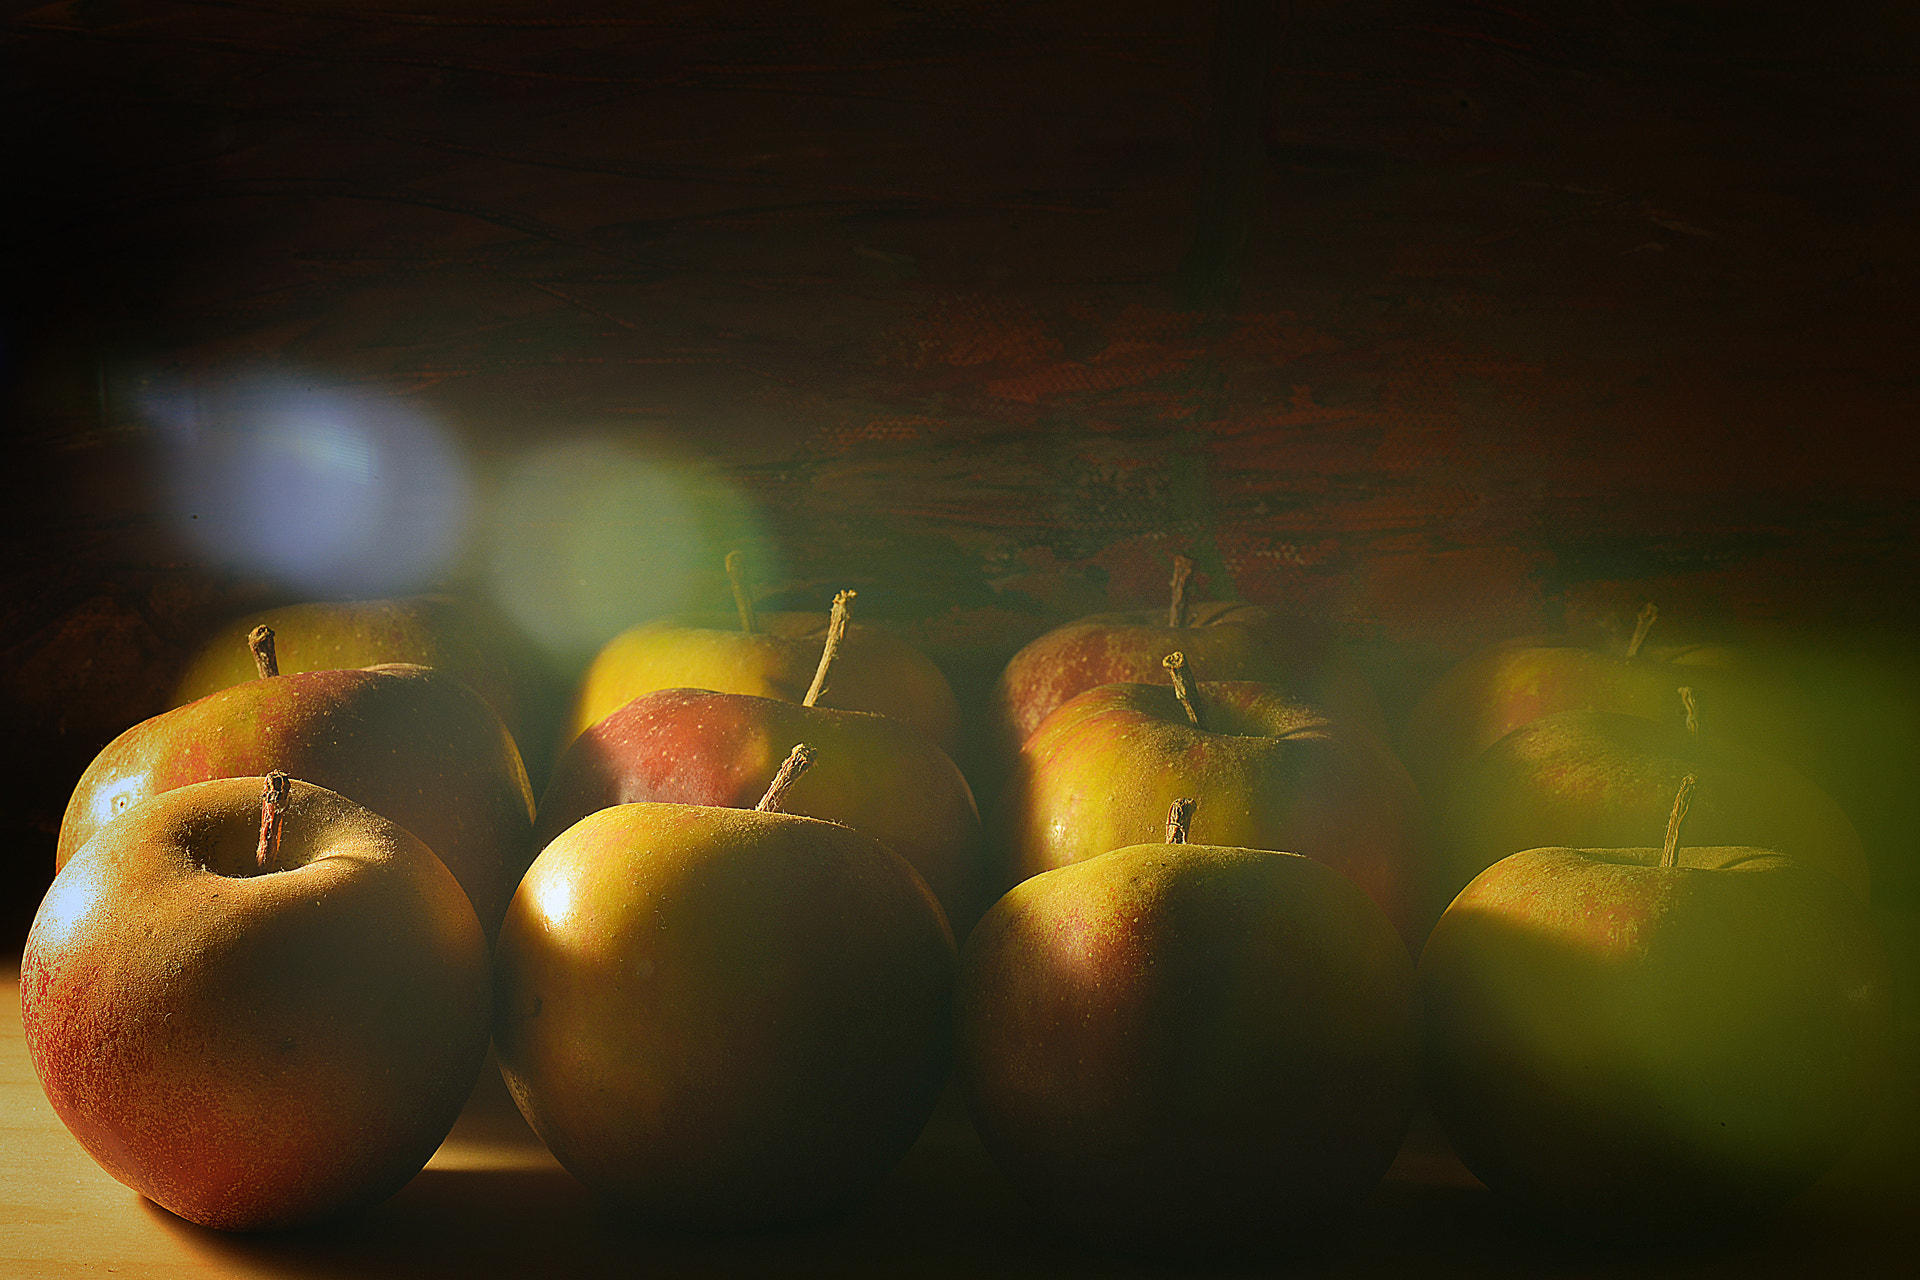 Photograph Pommes by Matthieu Miller on 500px